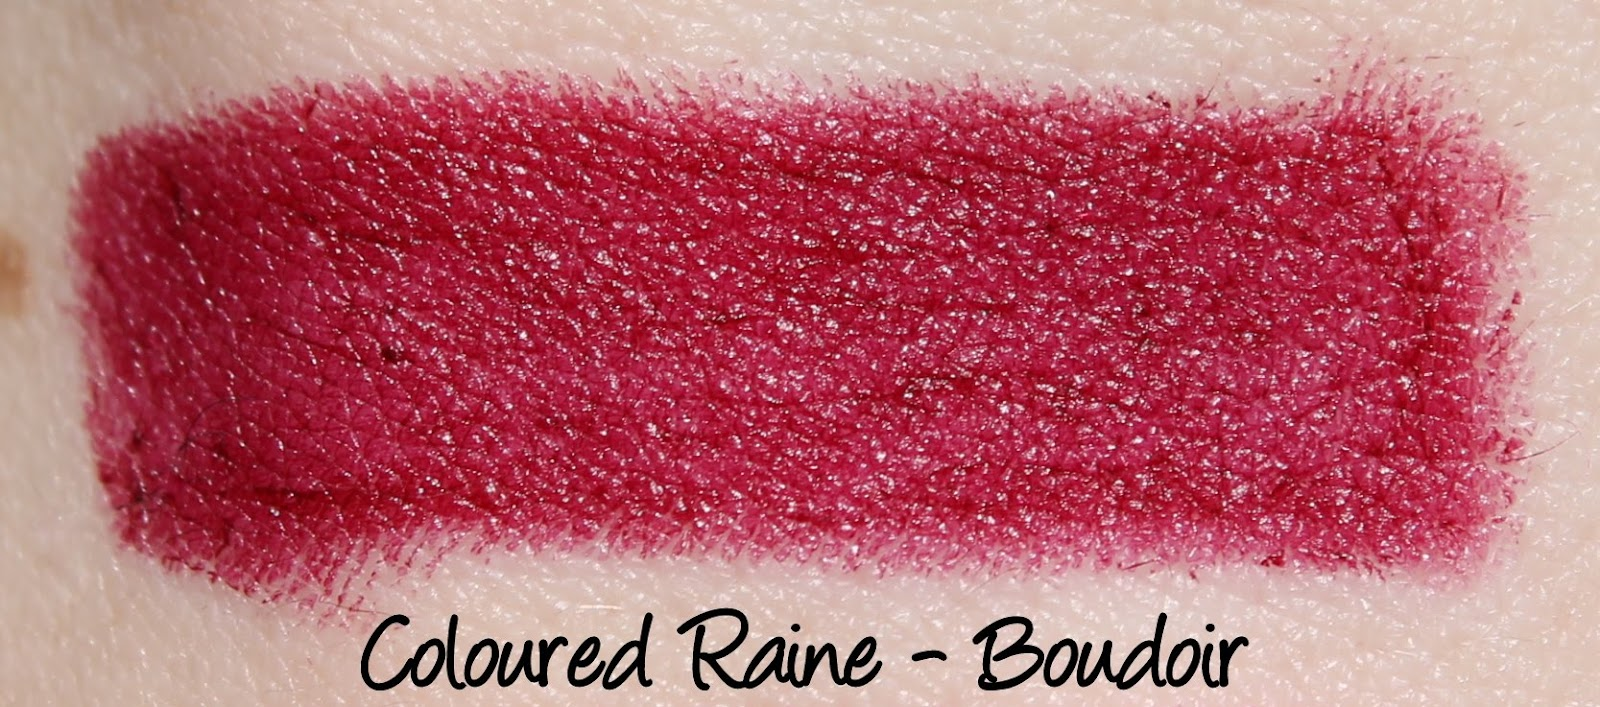 Coloured Raine Boudoir Lipstick Swatches & Review